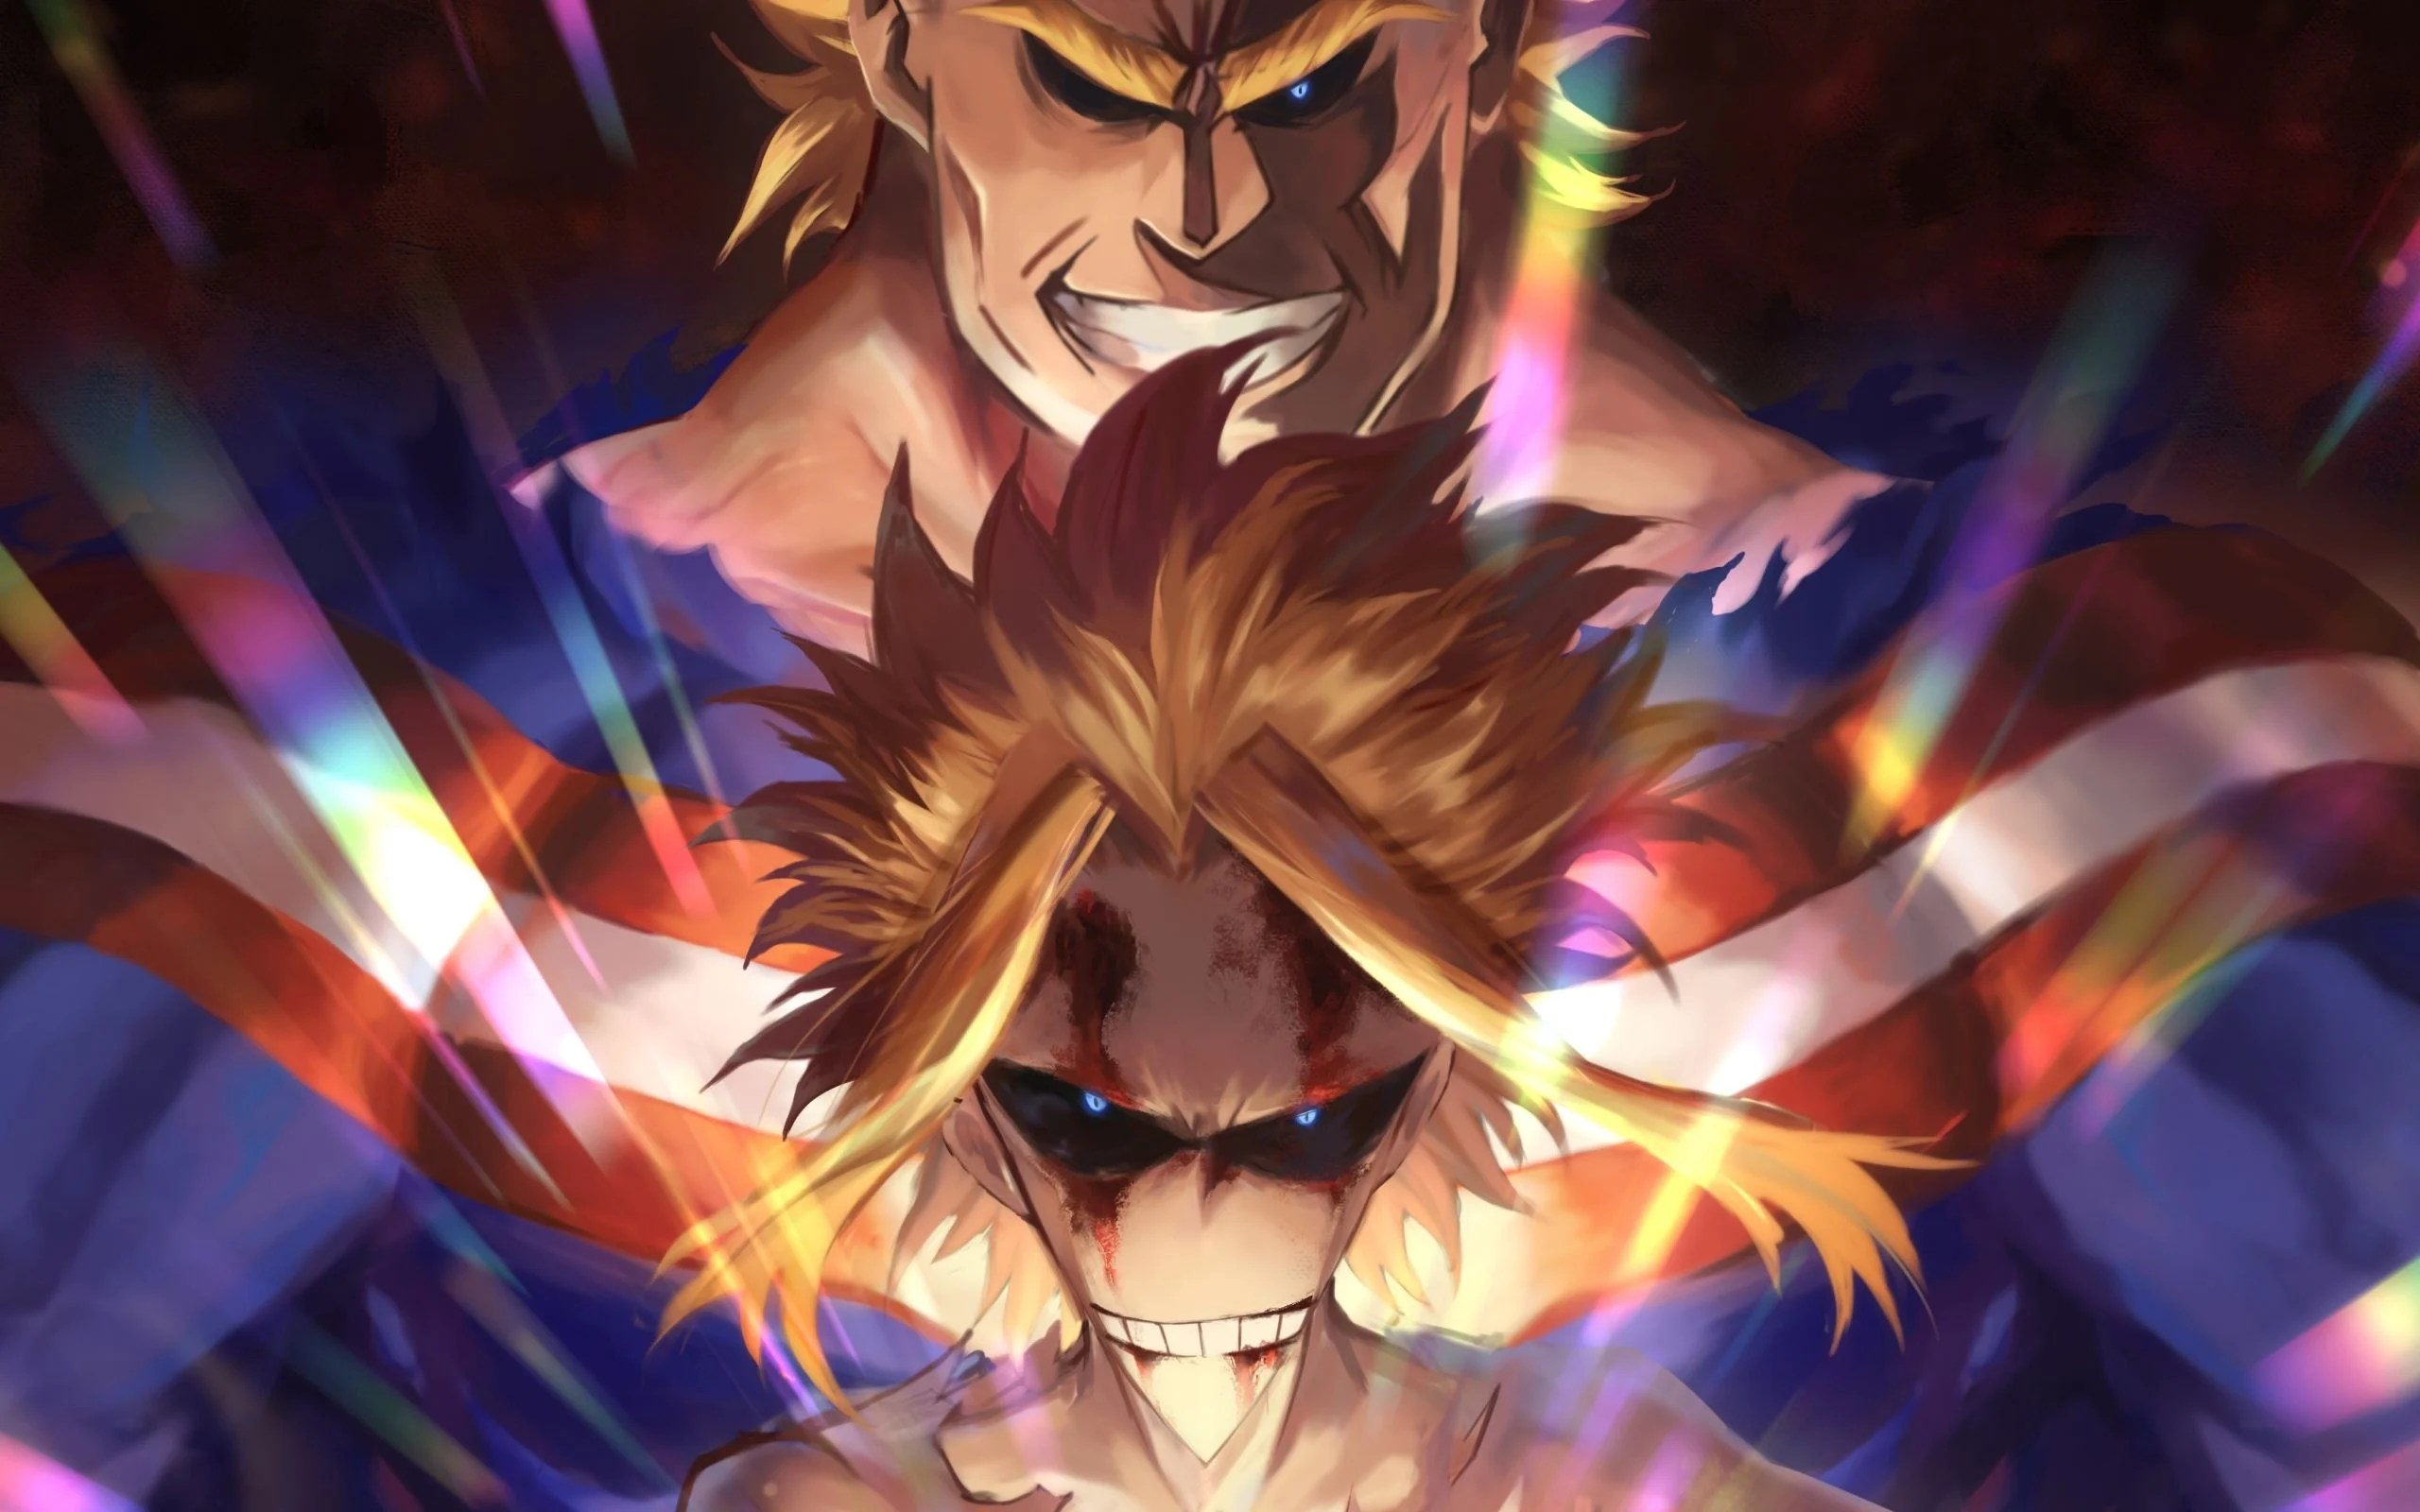 Become a hero with our 2807 my hero academia hd wallpapers and background images! My Hero Academia HD Wallpapers - Top Free My Hero Academia ...